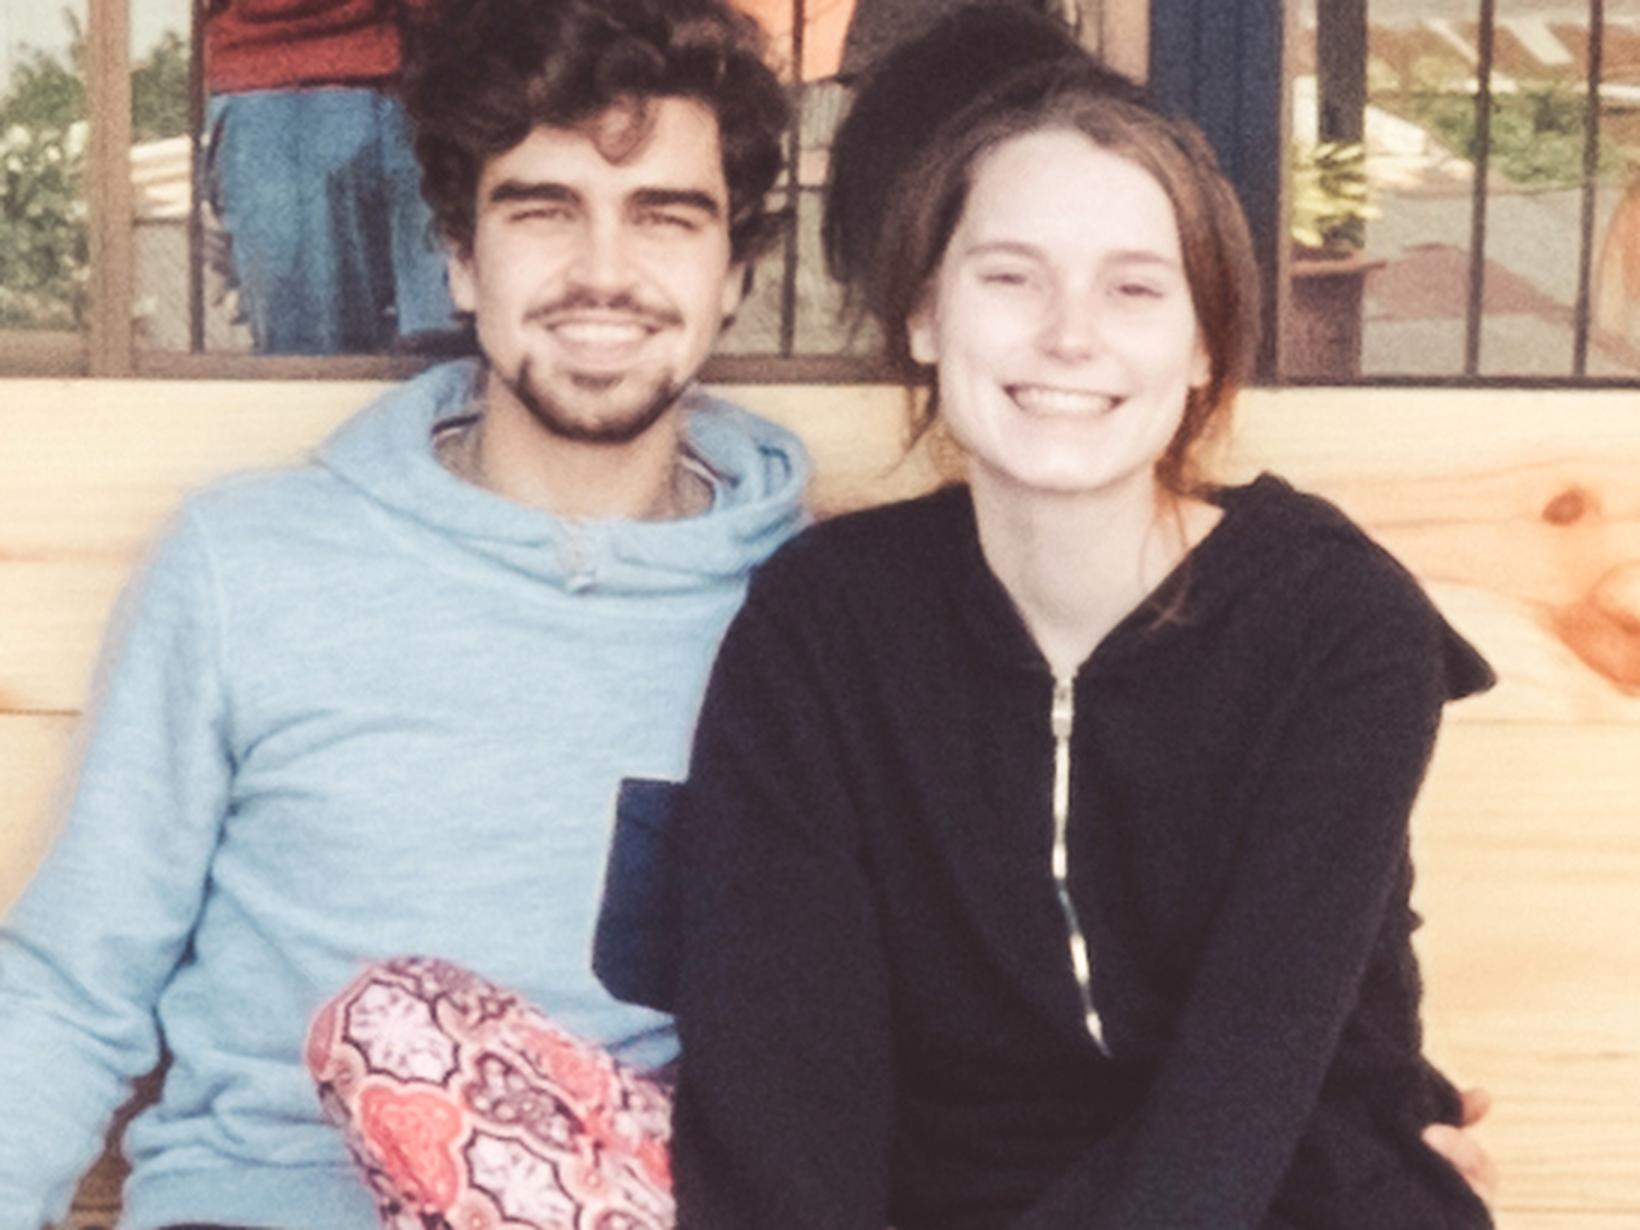 Marie & Ayyoub from Brussels, Belgium